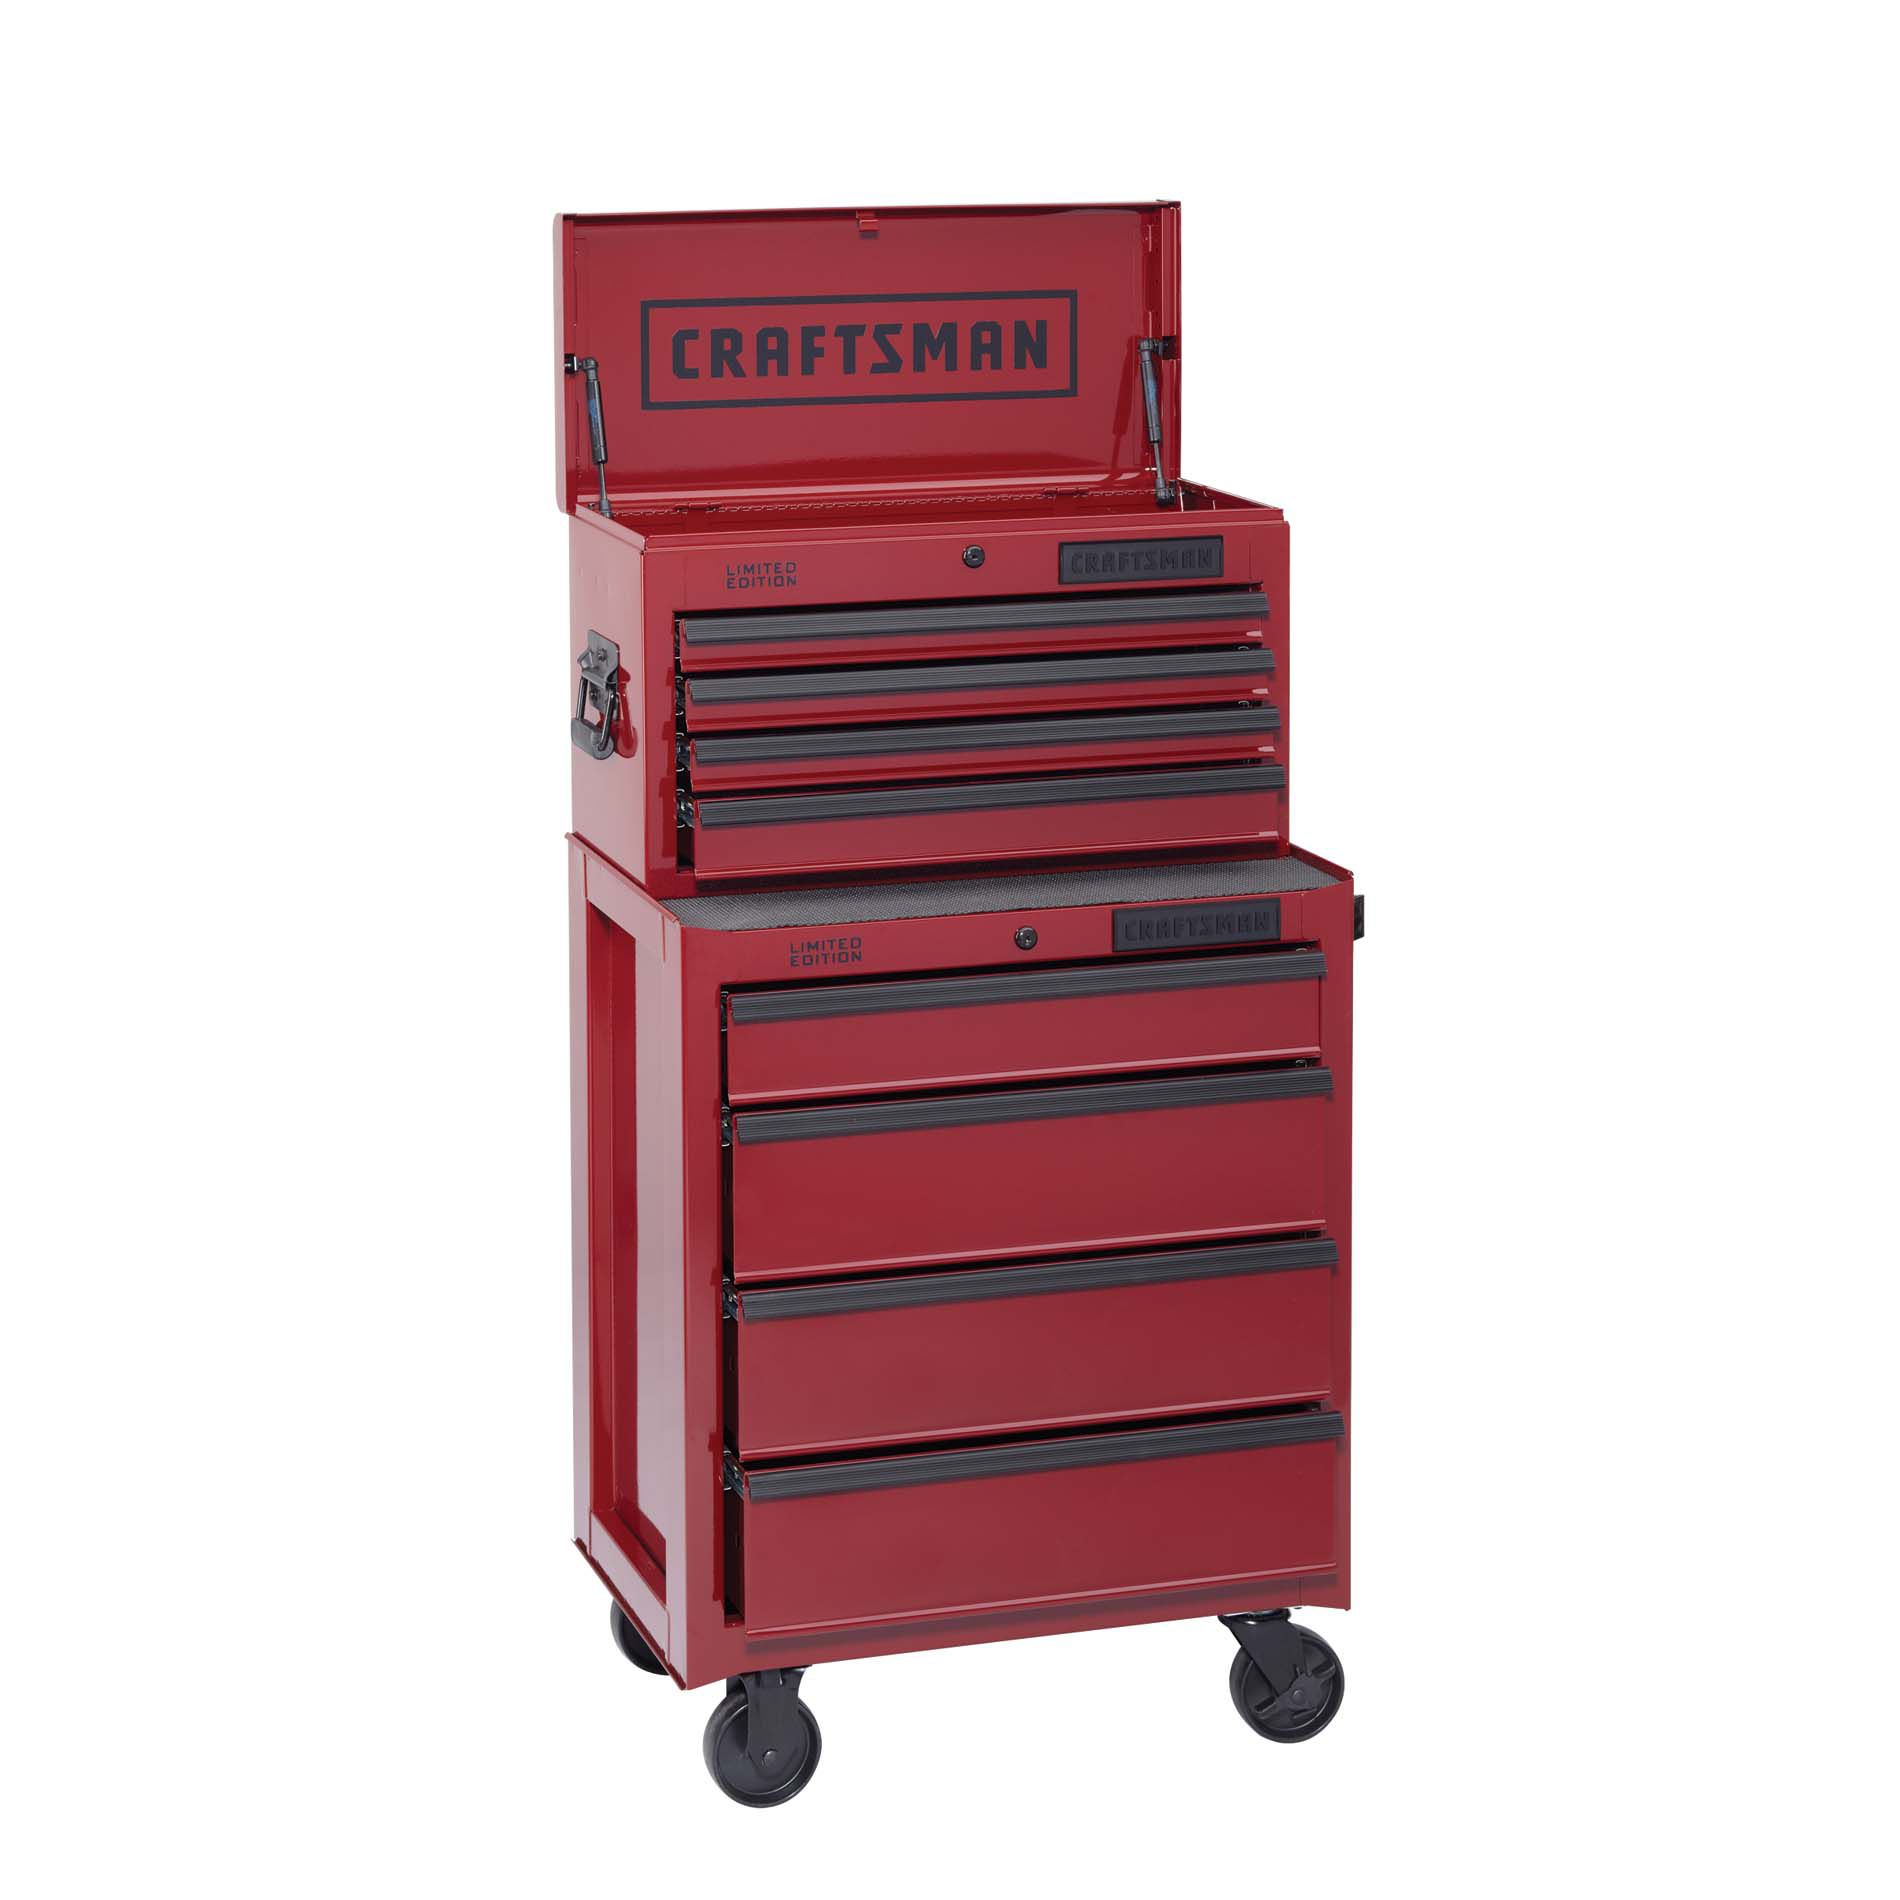 -Craftsman 8-Drawer Ball-Bearing Combo - Burgundy (Limited Edition)